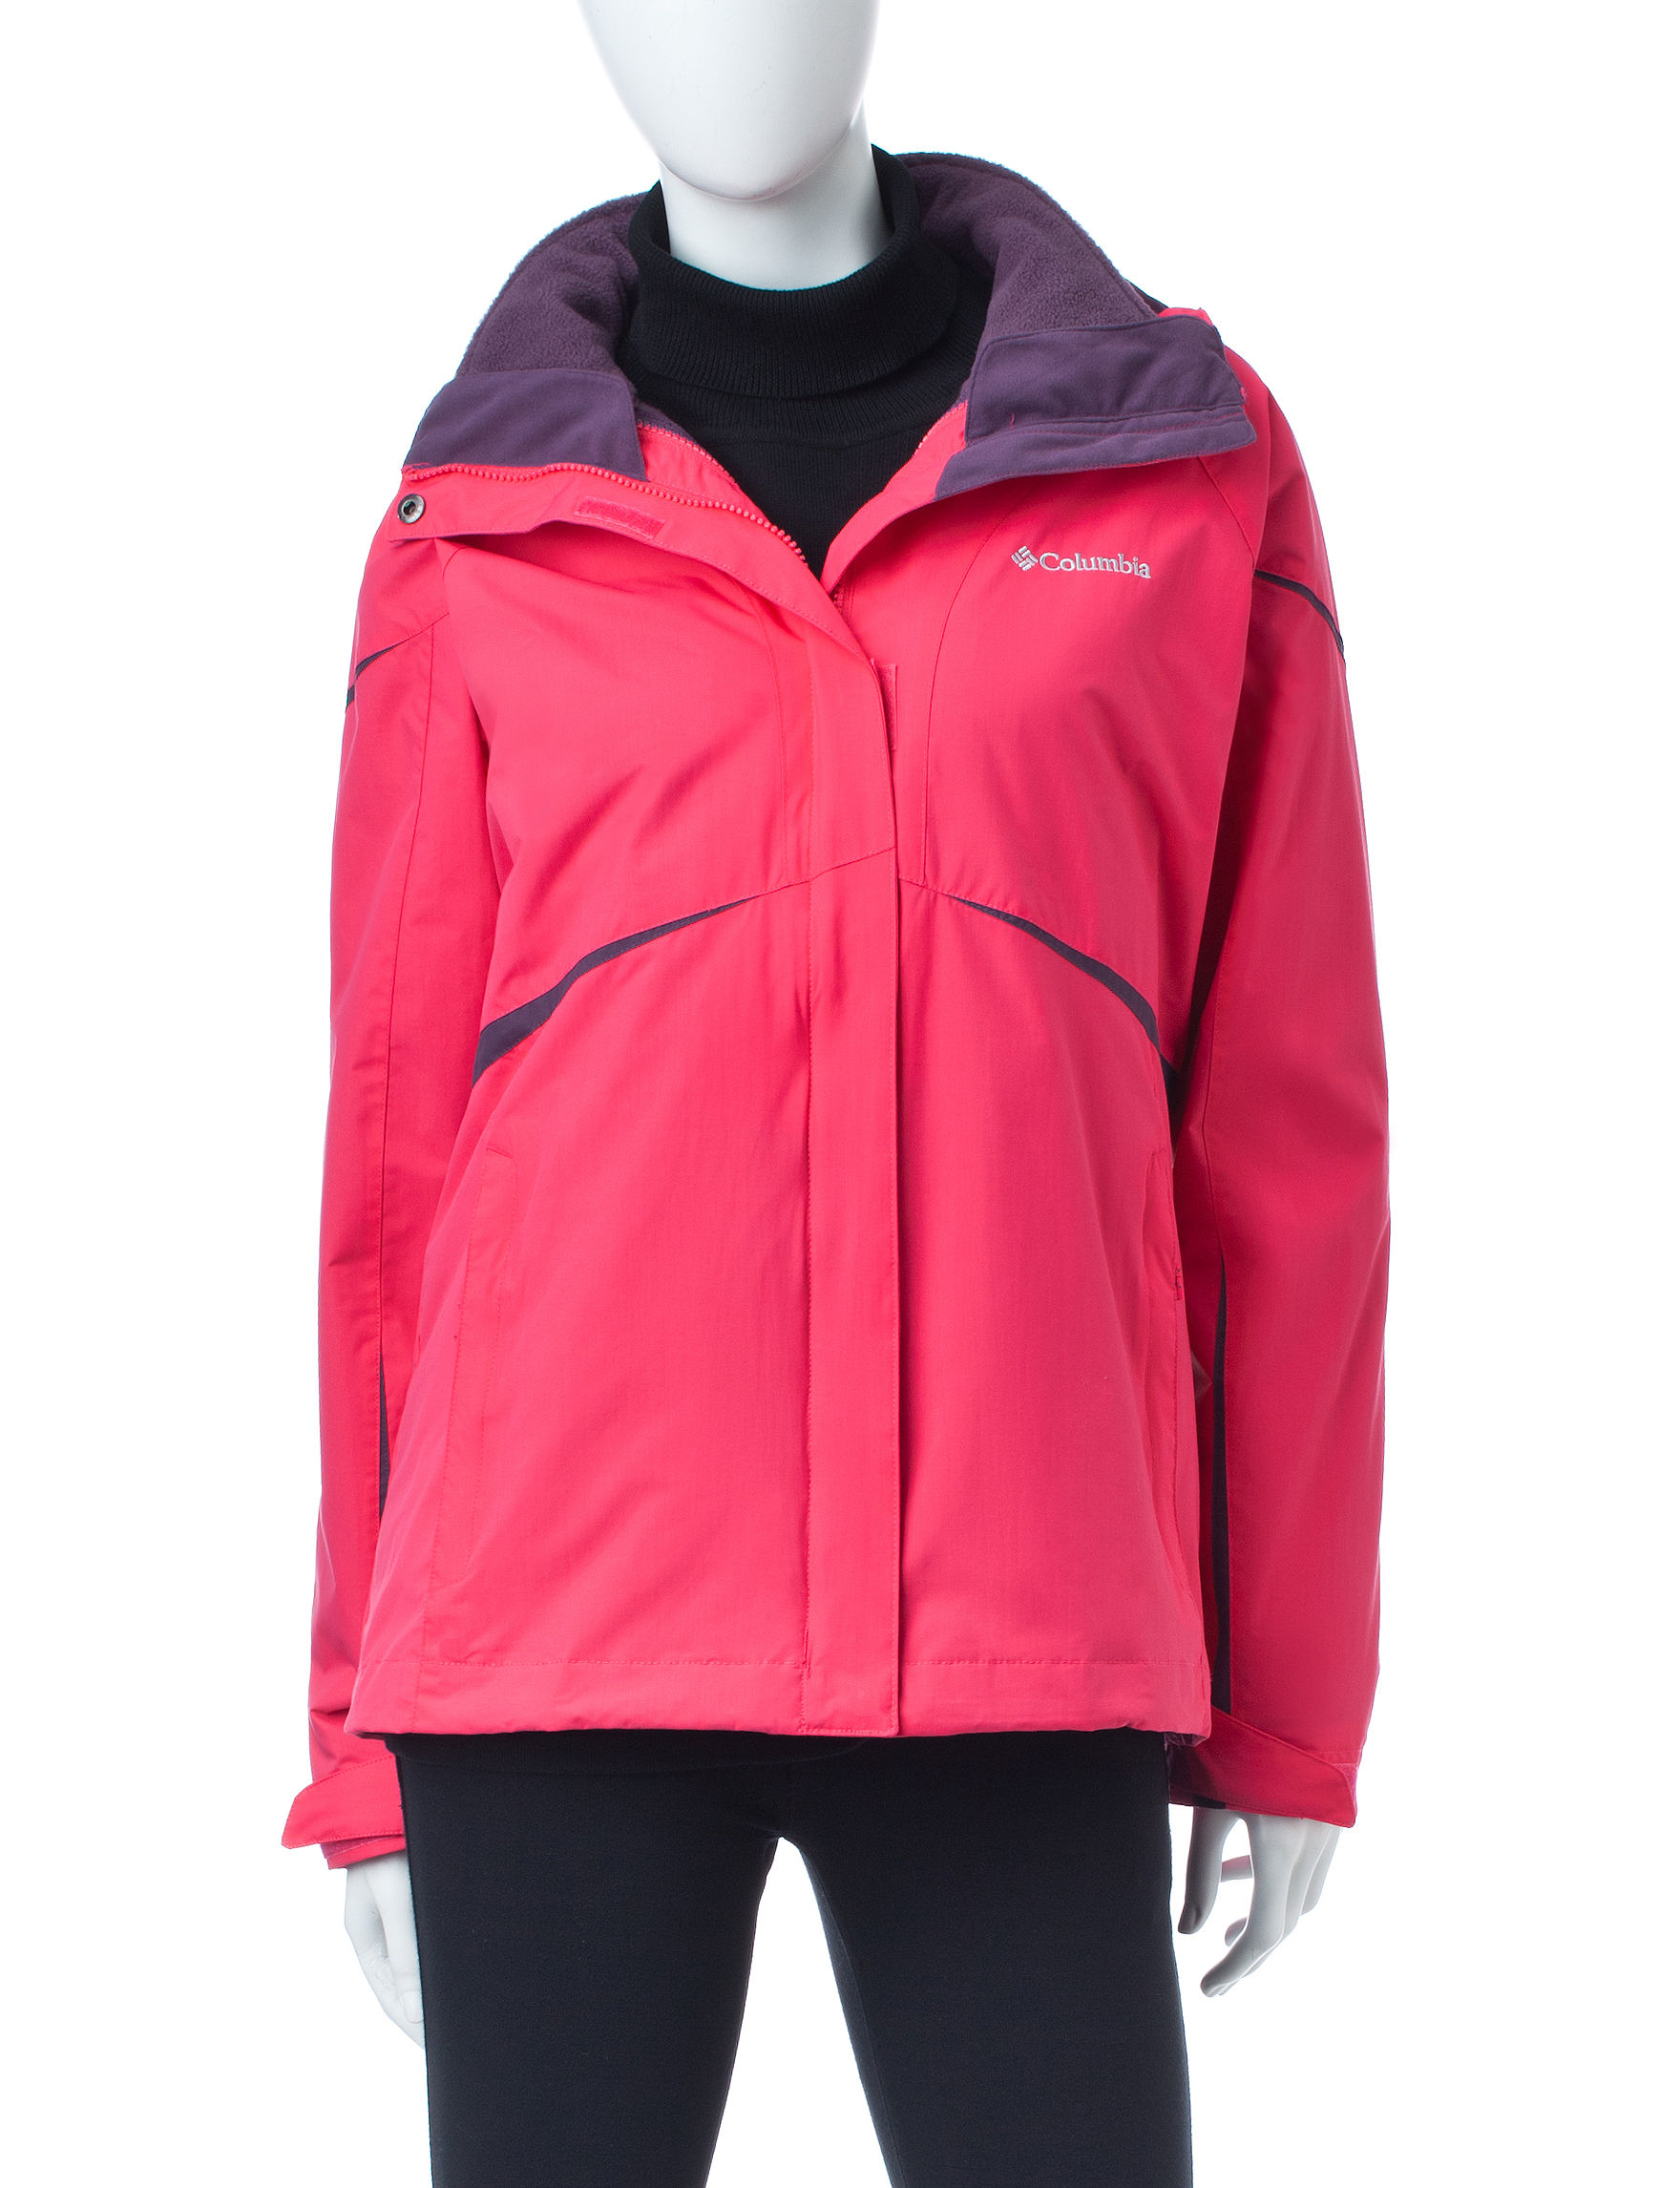 Columbia Pink Rain & Snow Jackets